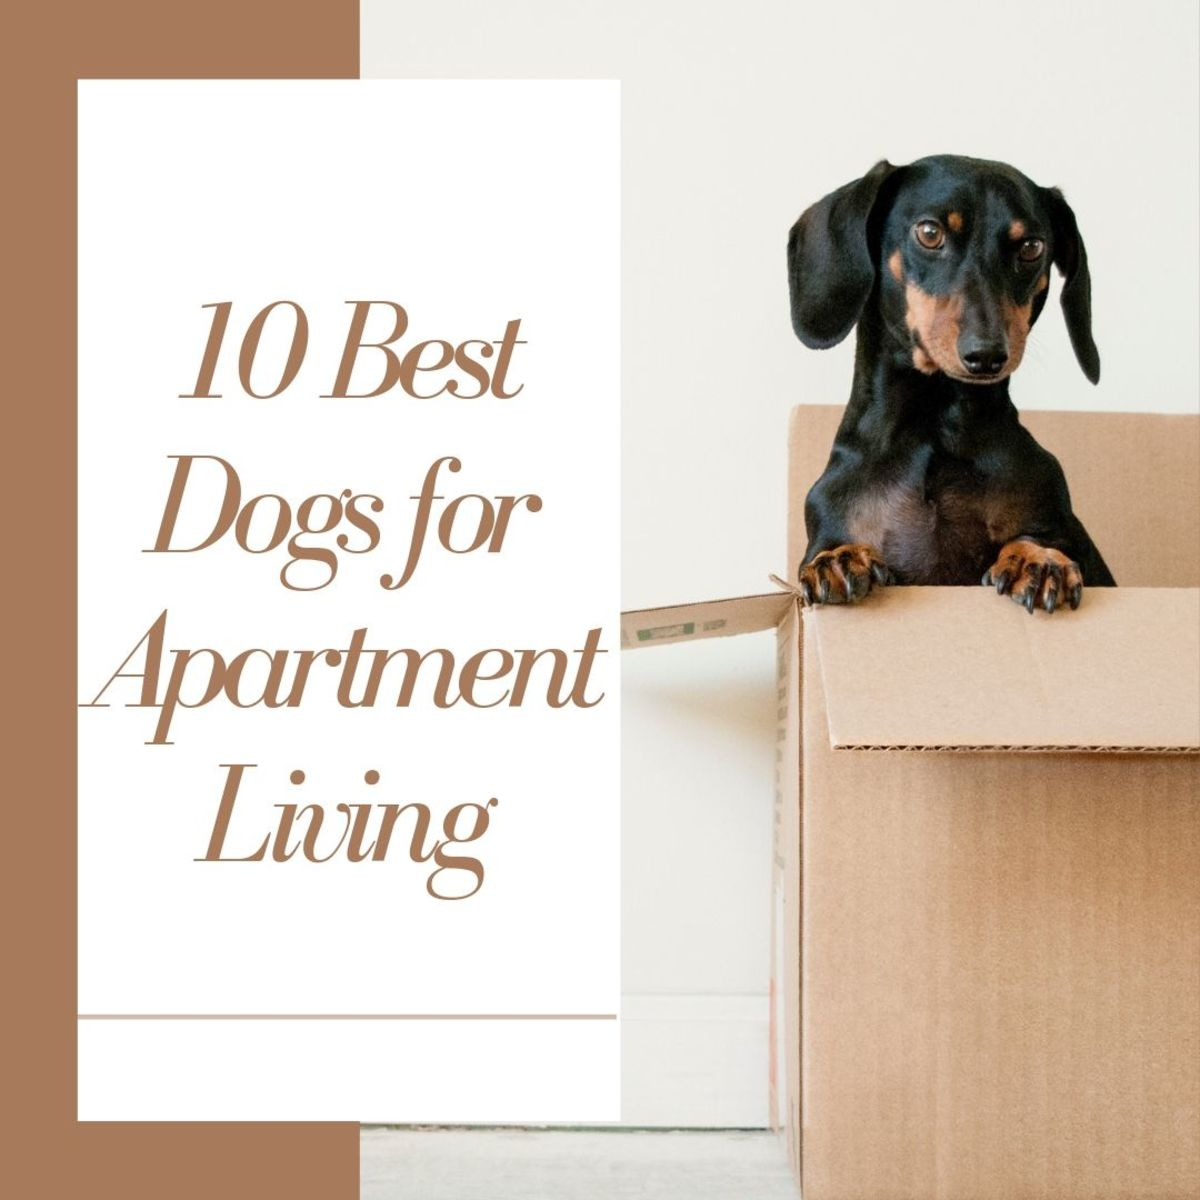 Learn all about the 10 best dog breeds for apartment living!